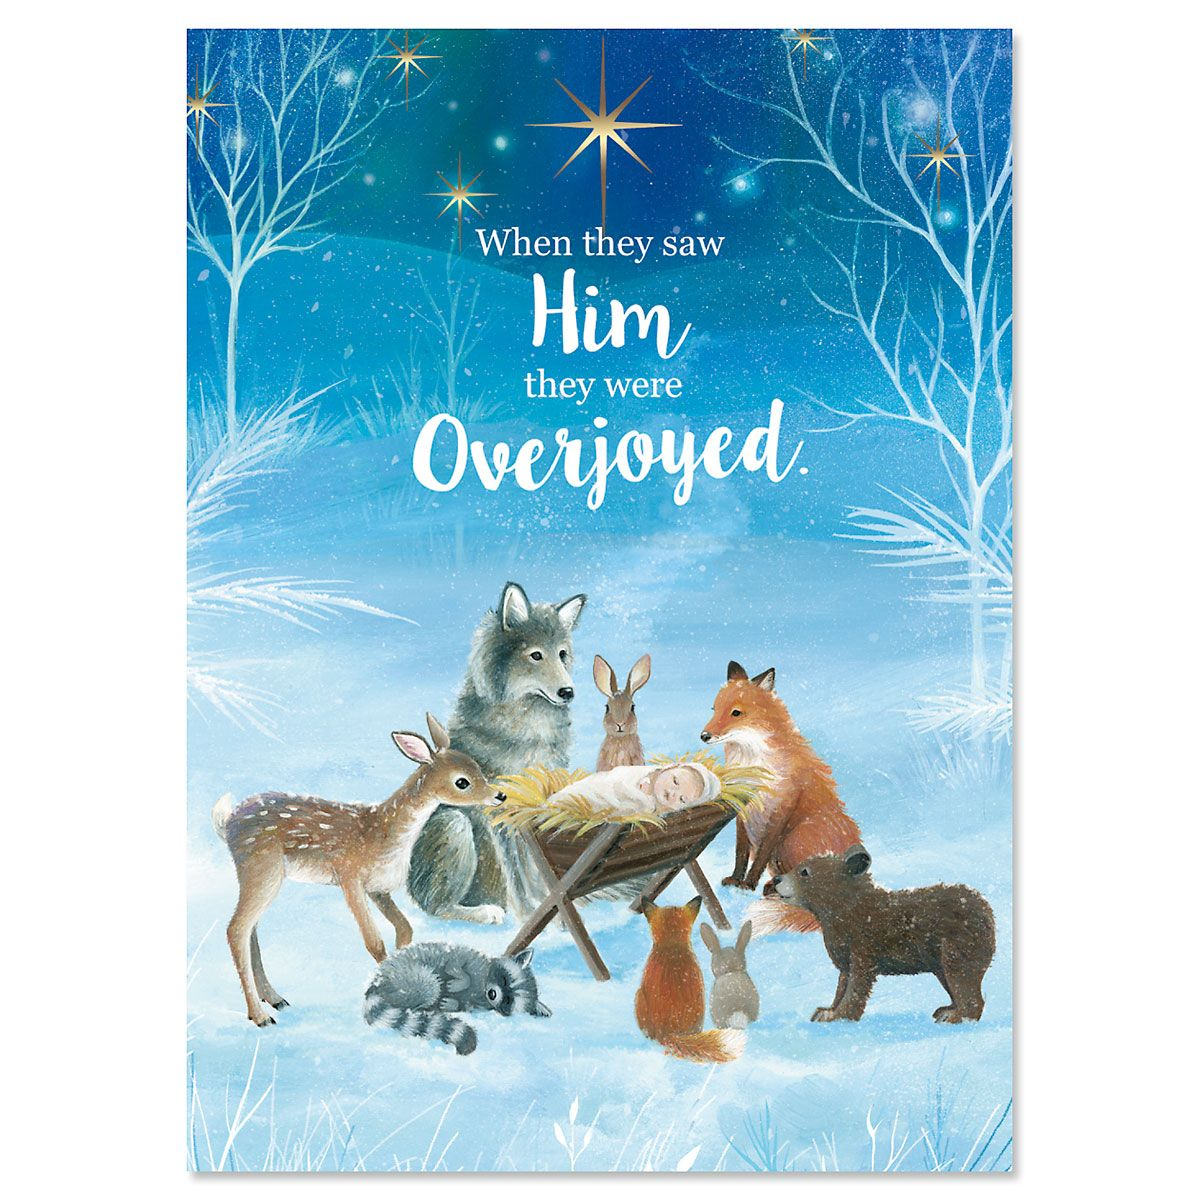 Forest Christmas Manger Nonpersonalized Christmas Cards - Set of 72